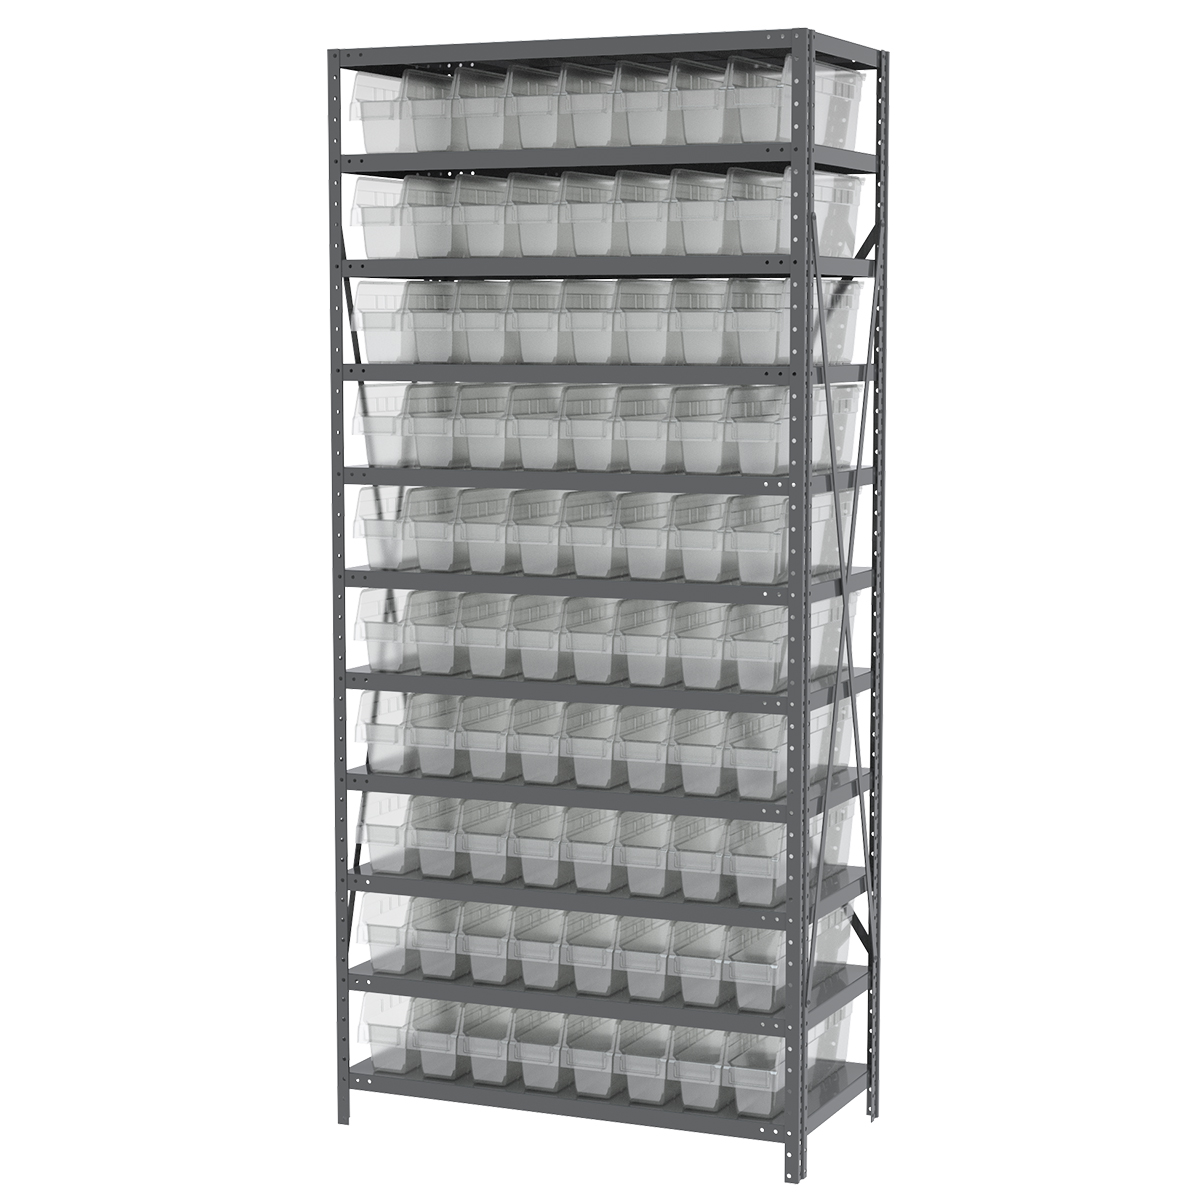 Steel Shelving Kit, 18x36x79, 80 Bins, Gray/Clear.  This item sold in carton quantities of 1.